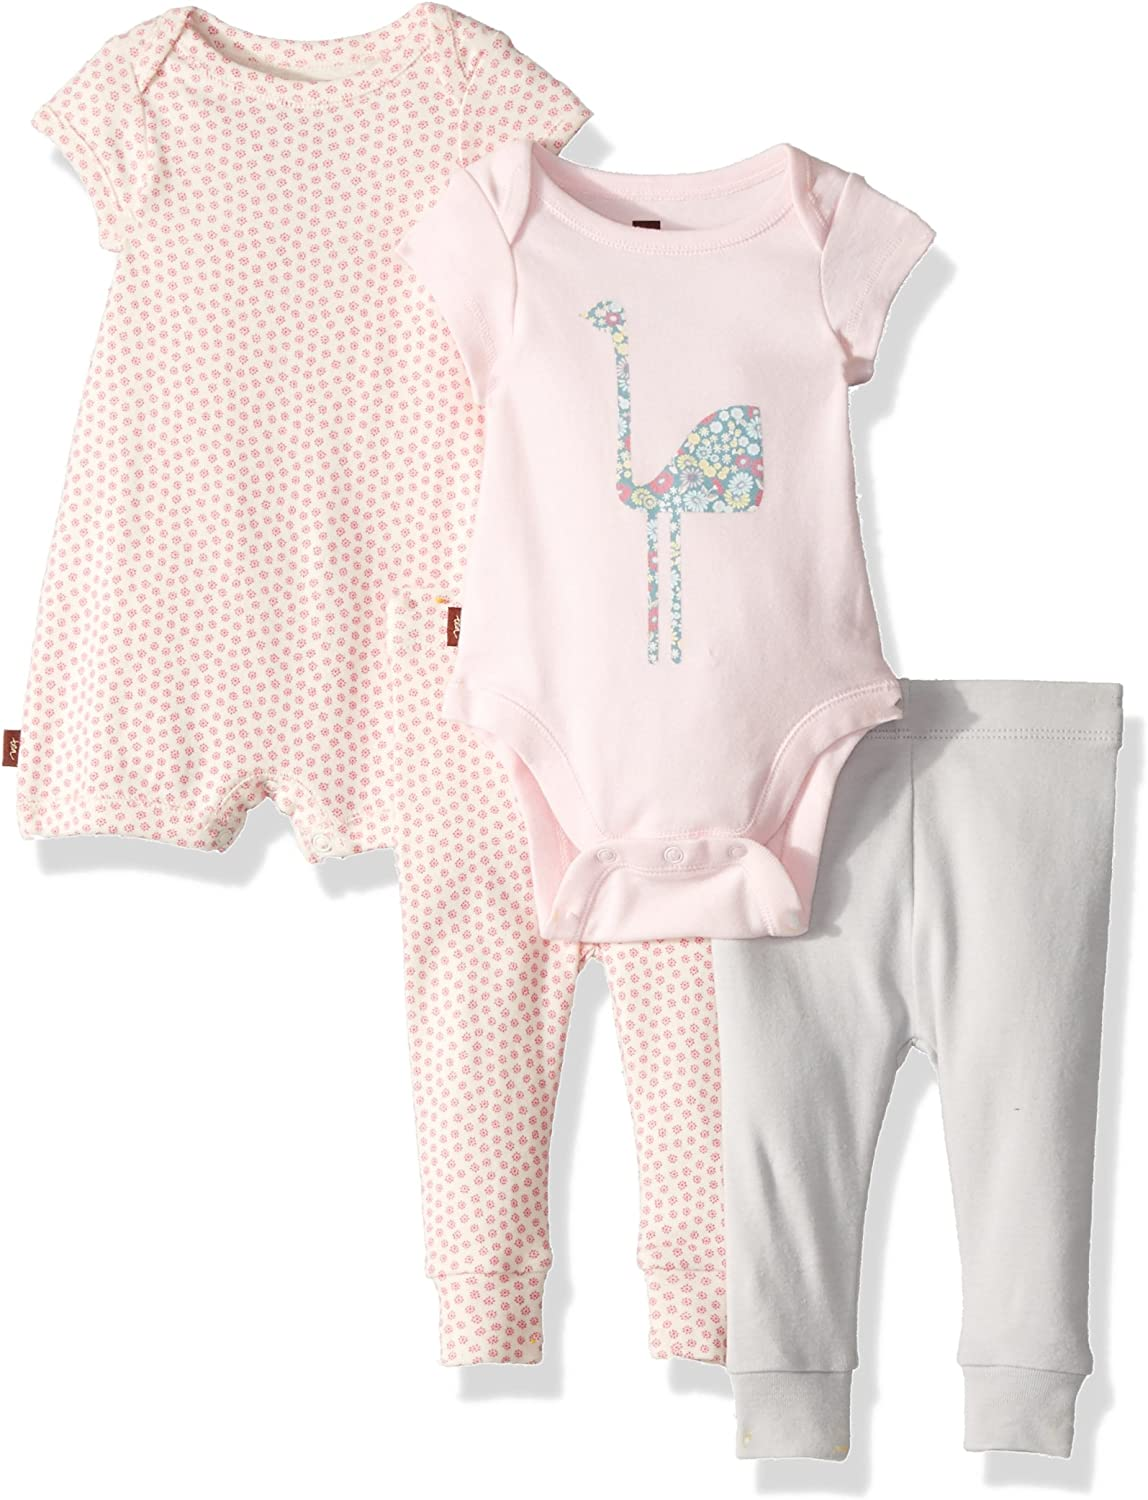 TEA COLLECTION INFANT LONG SLEEVED BODY SUIT SHIRT SIZE 6-12 MONTHS NEW